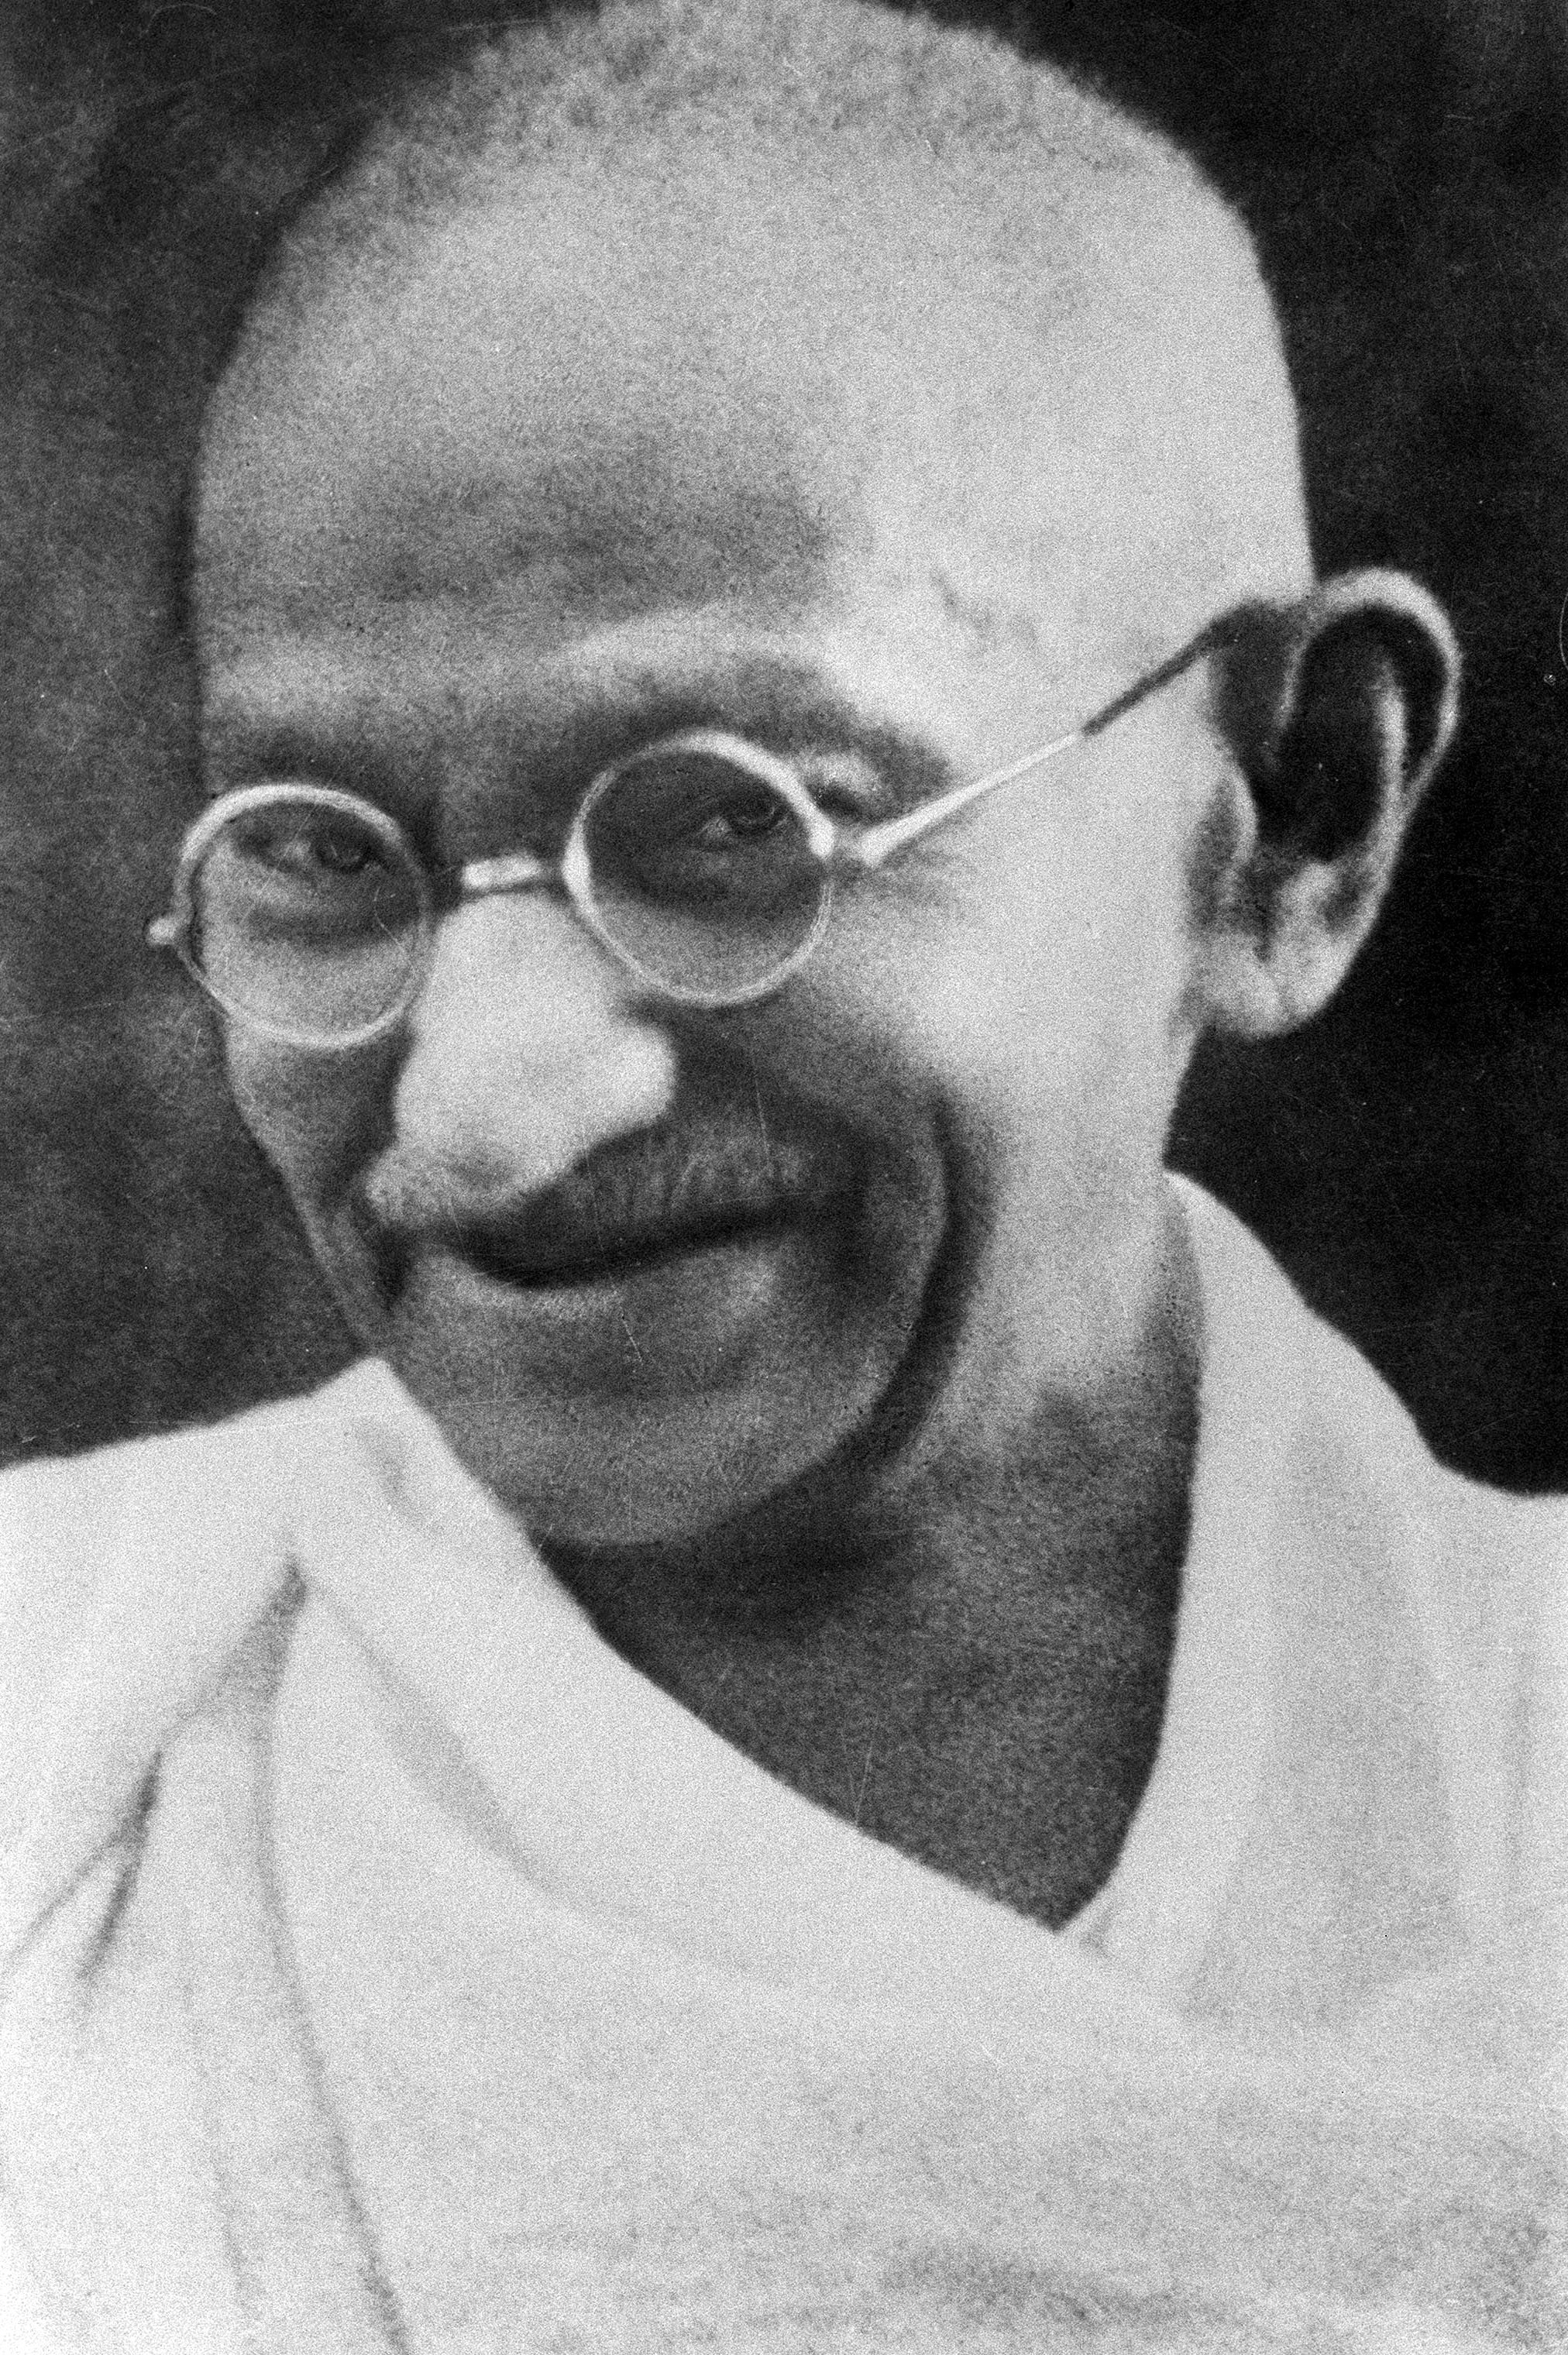 Description portrait gandhi